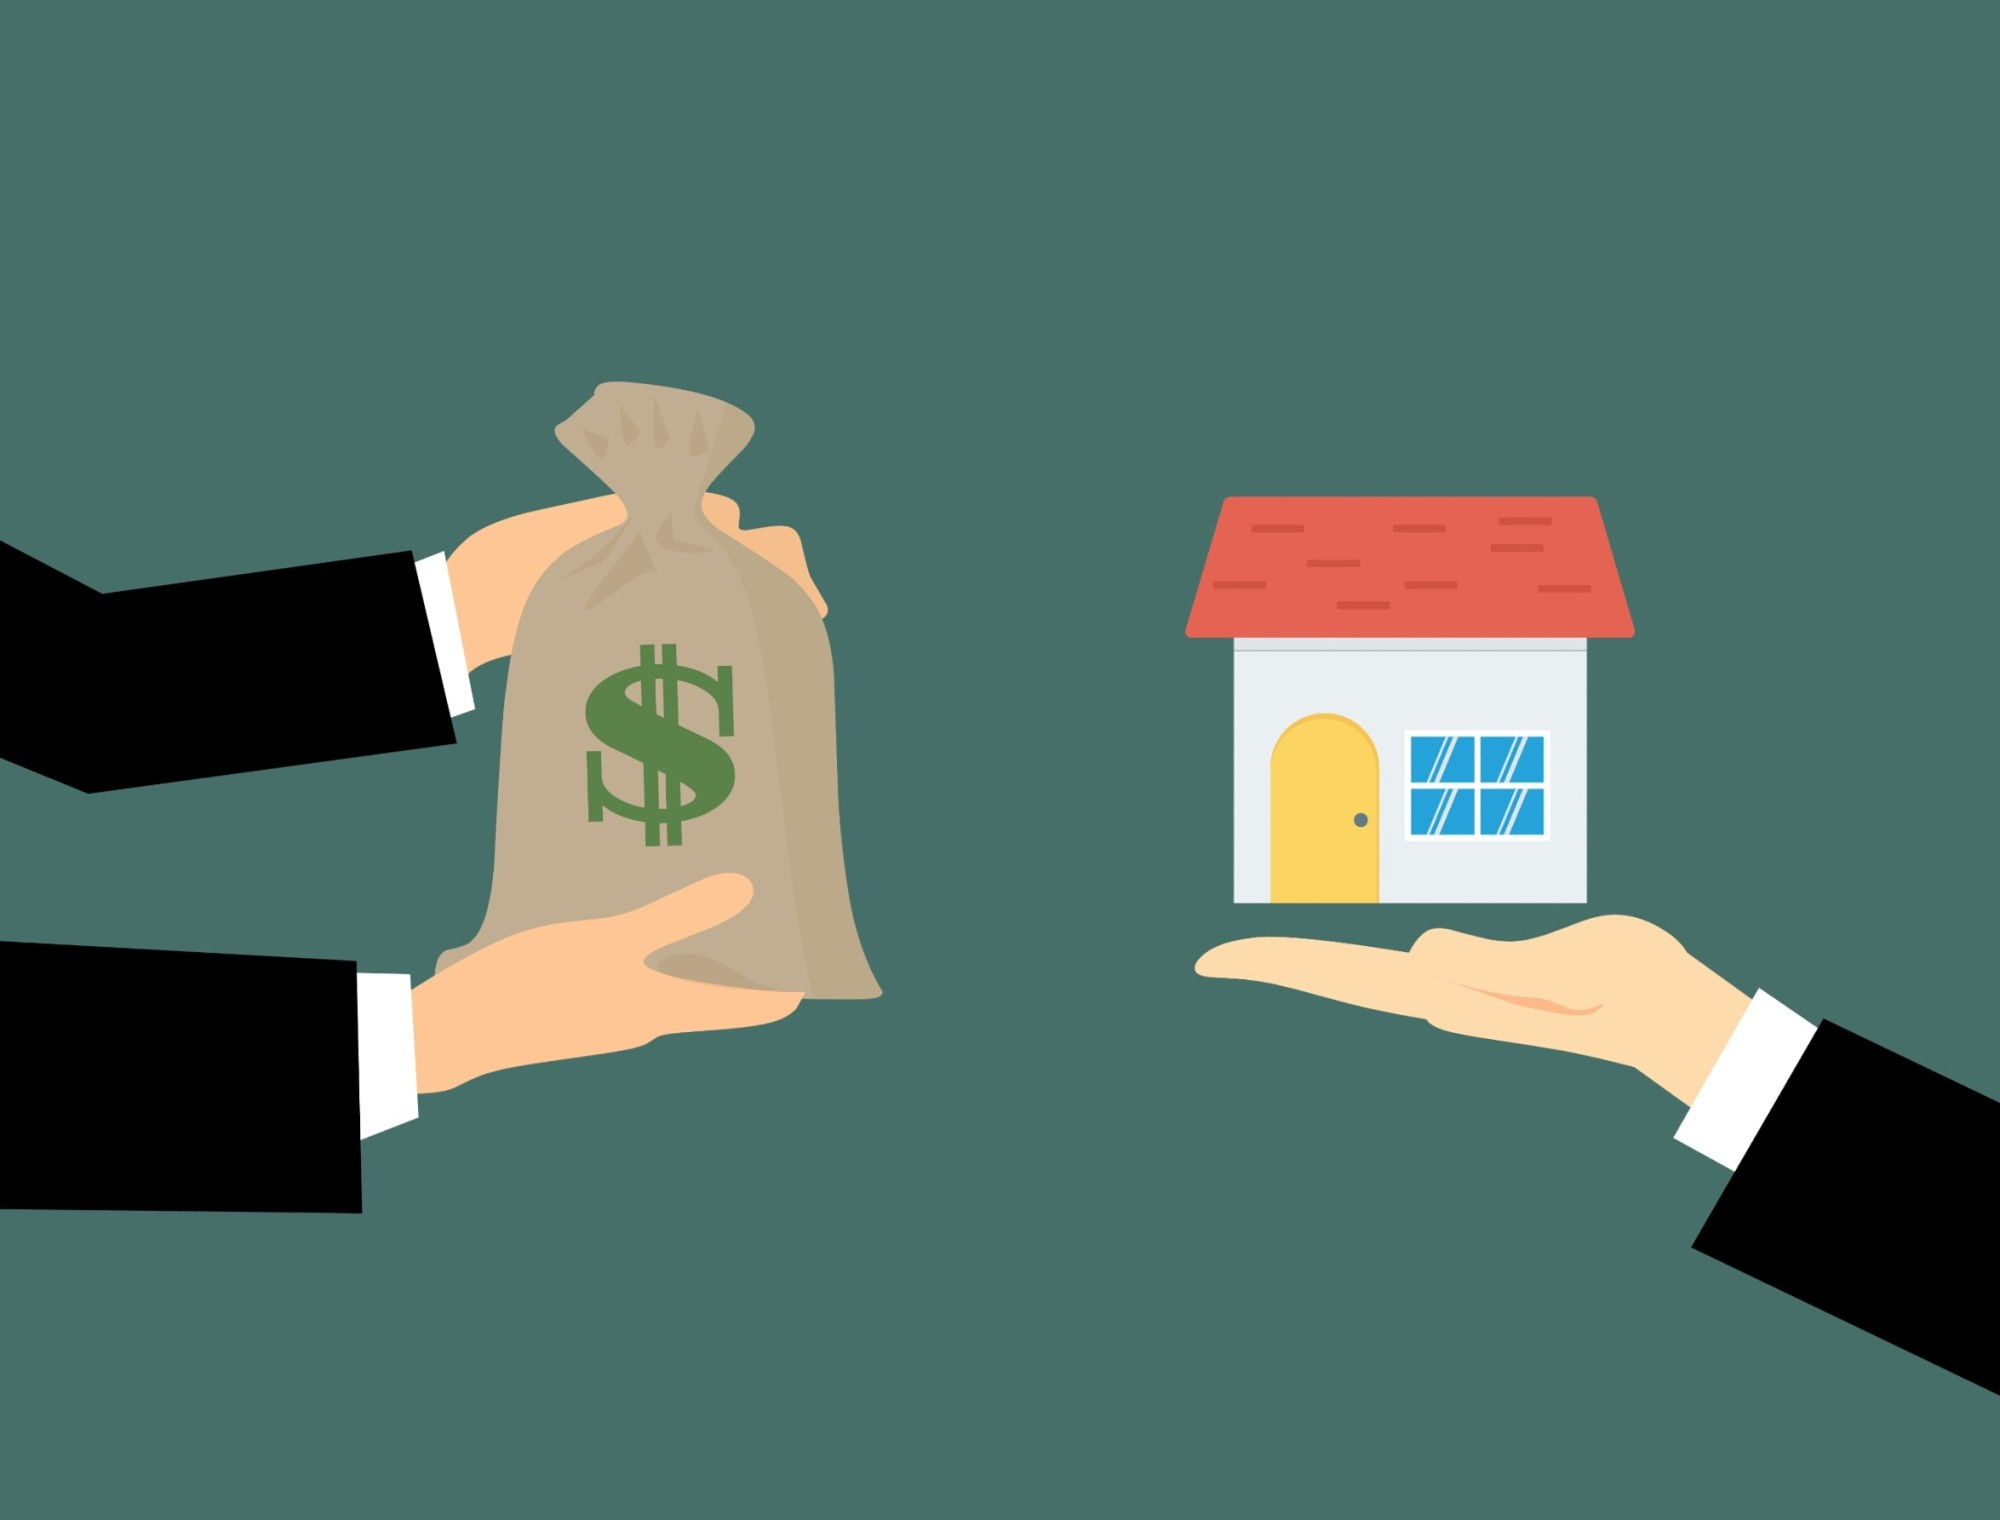 rebate real estate agent, property holders must consider that utilizing a markdown real estate agent